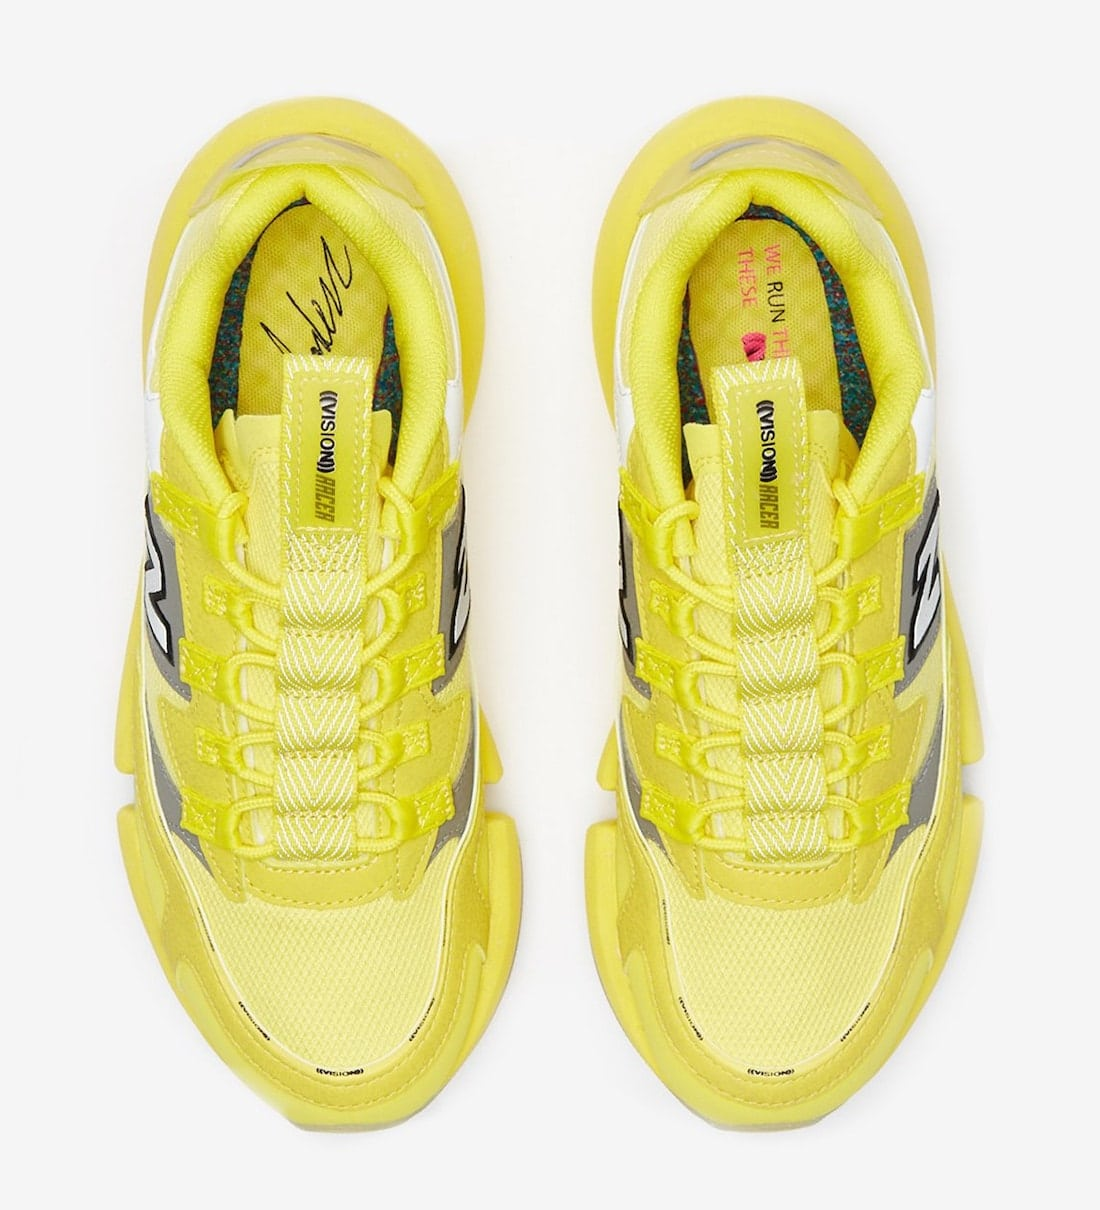 Jaden-Smith-New-Balance-Vision-Racer-Sunflower-Yellow-Hover-View